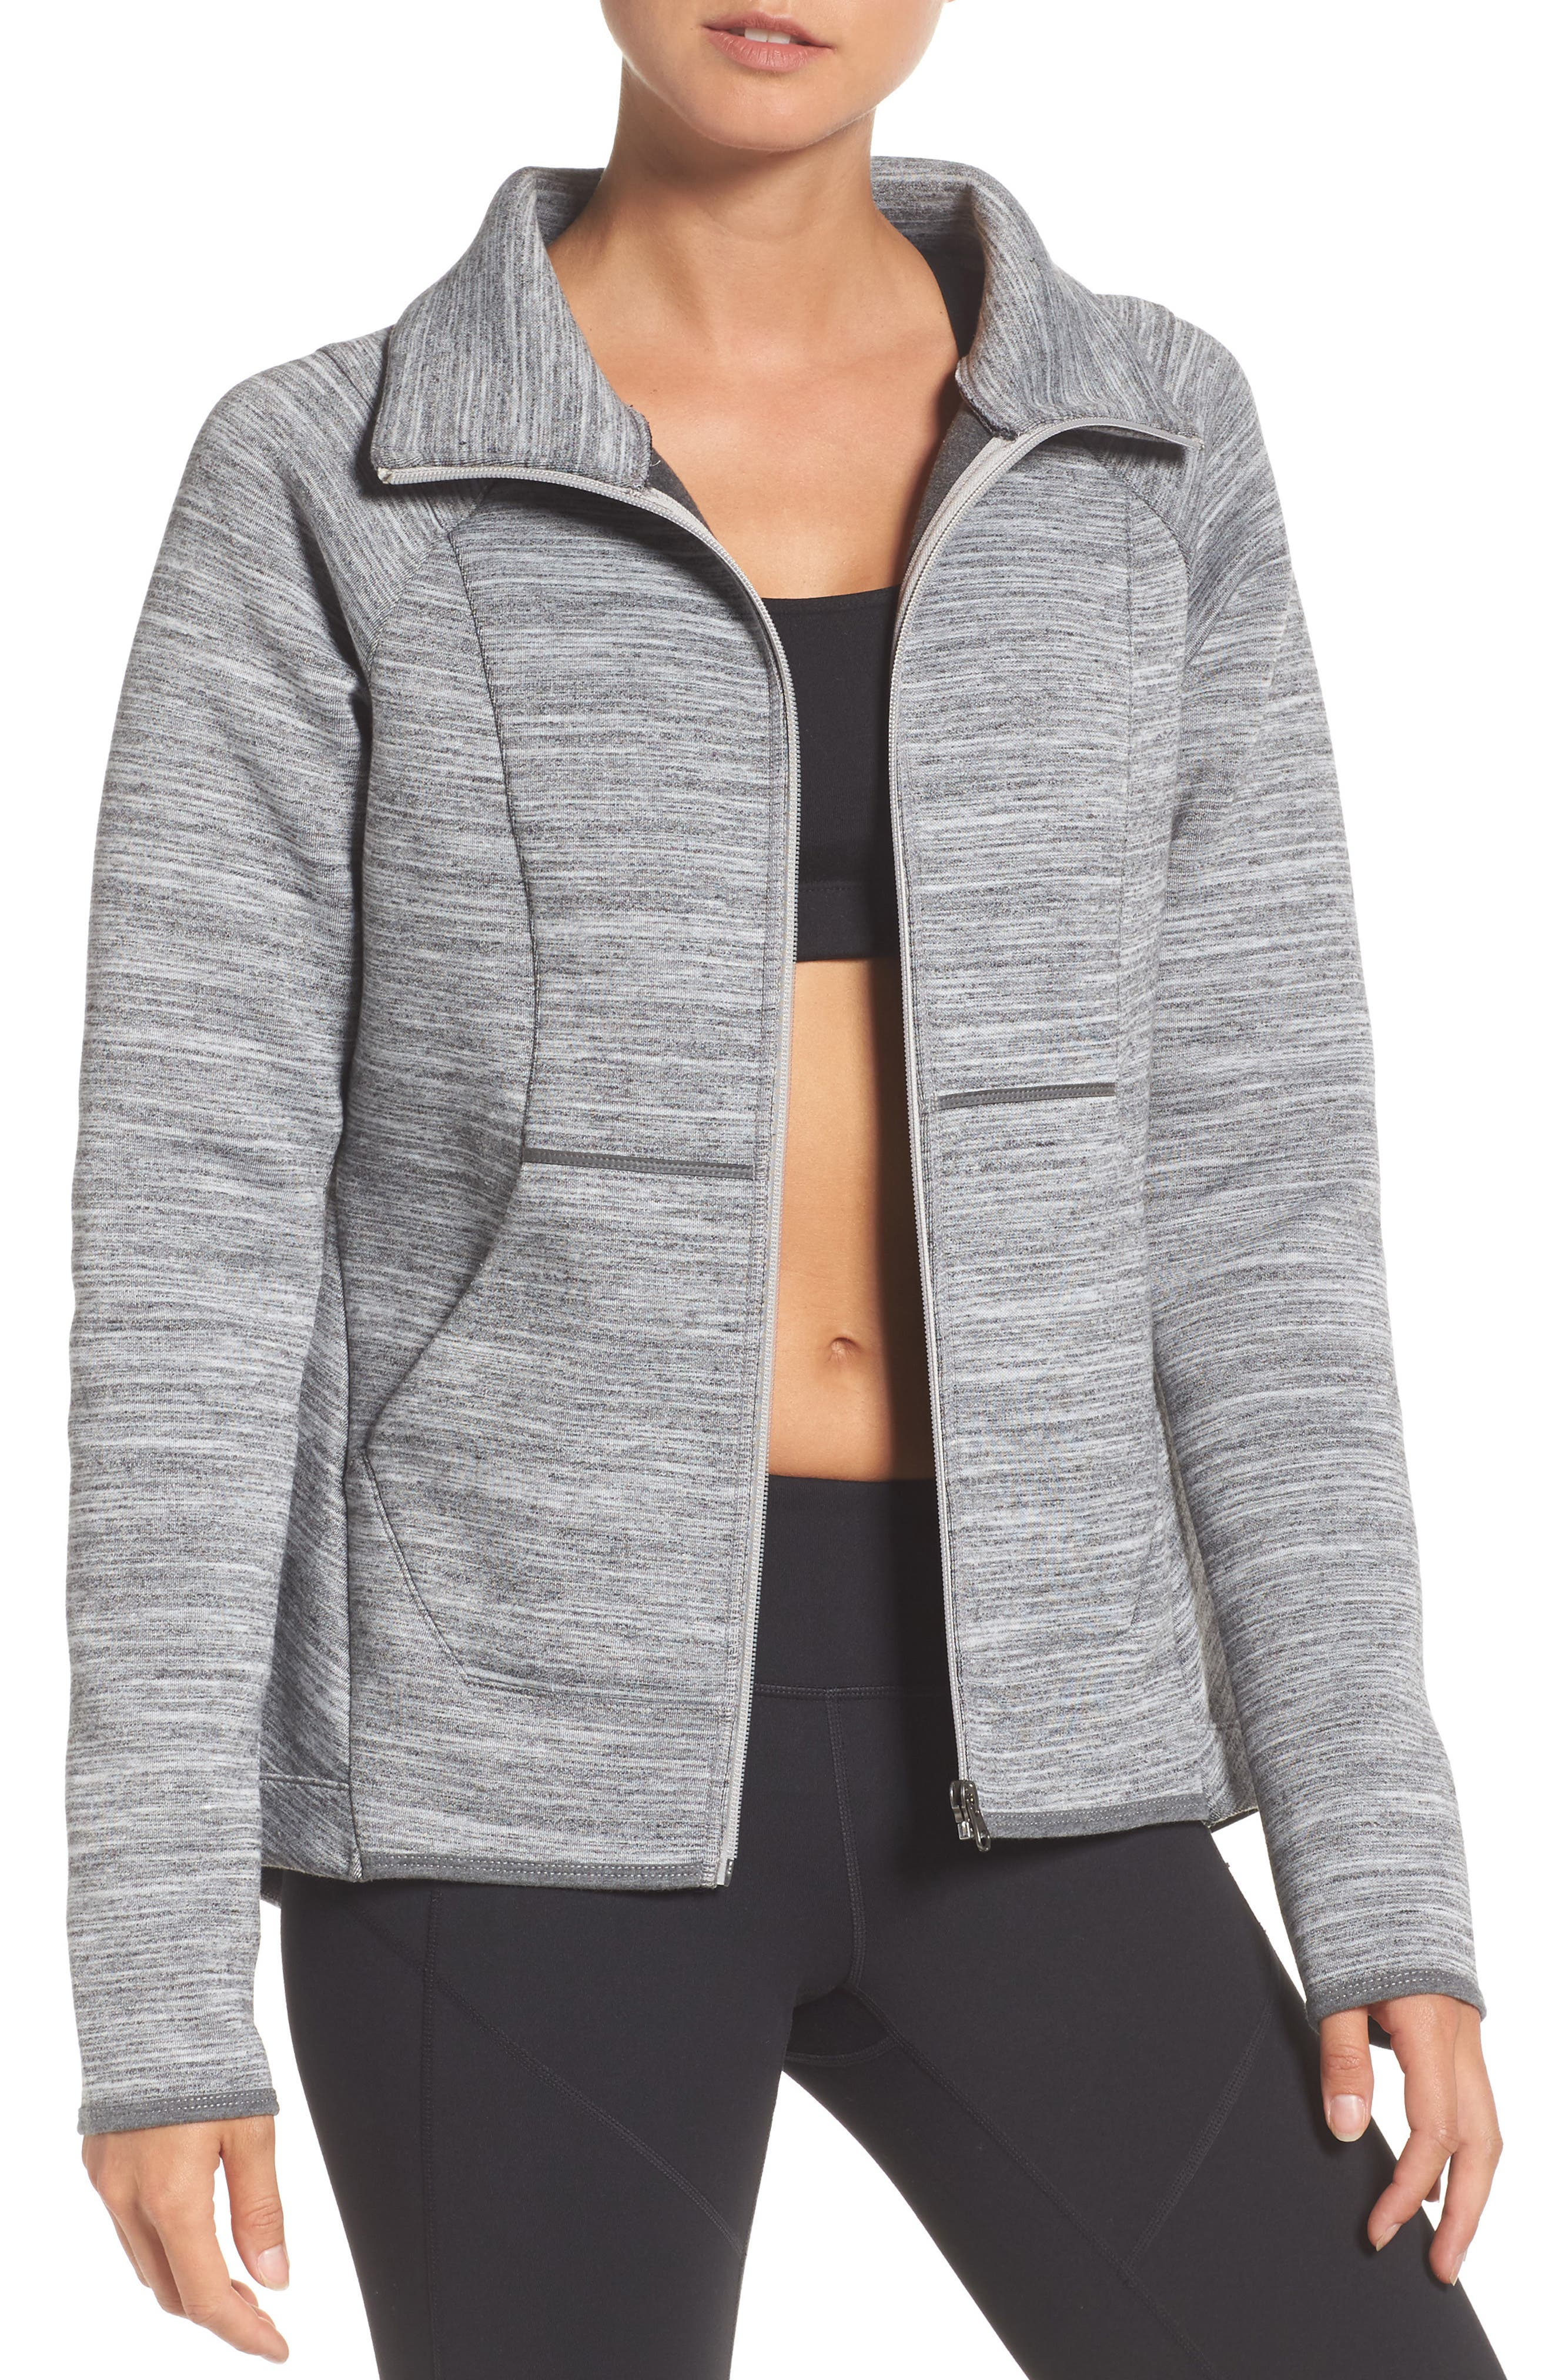 Interval Training Jacket,                         Main,                         color,